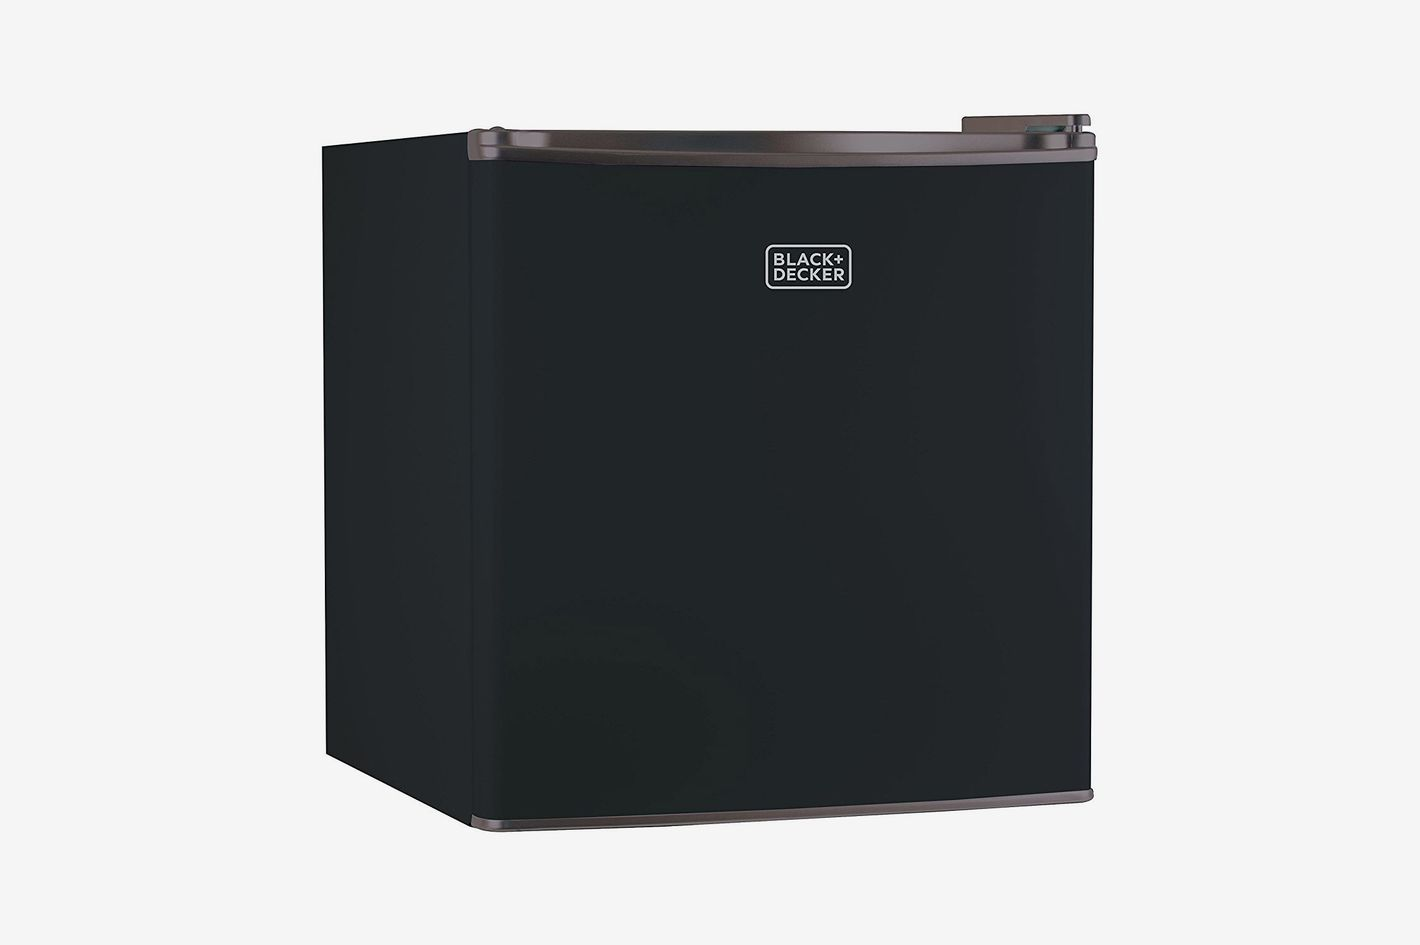 A small, cubic and black mini fridge with a gray trim on top